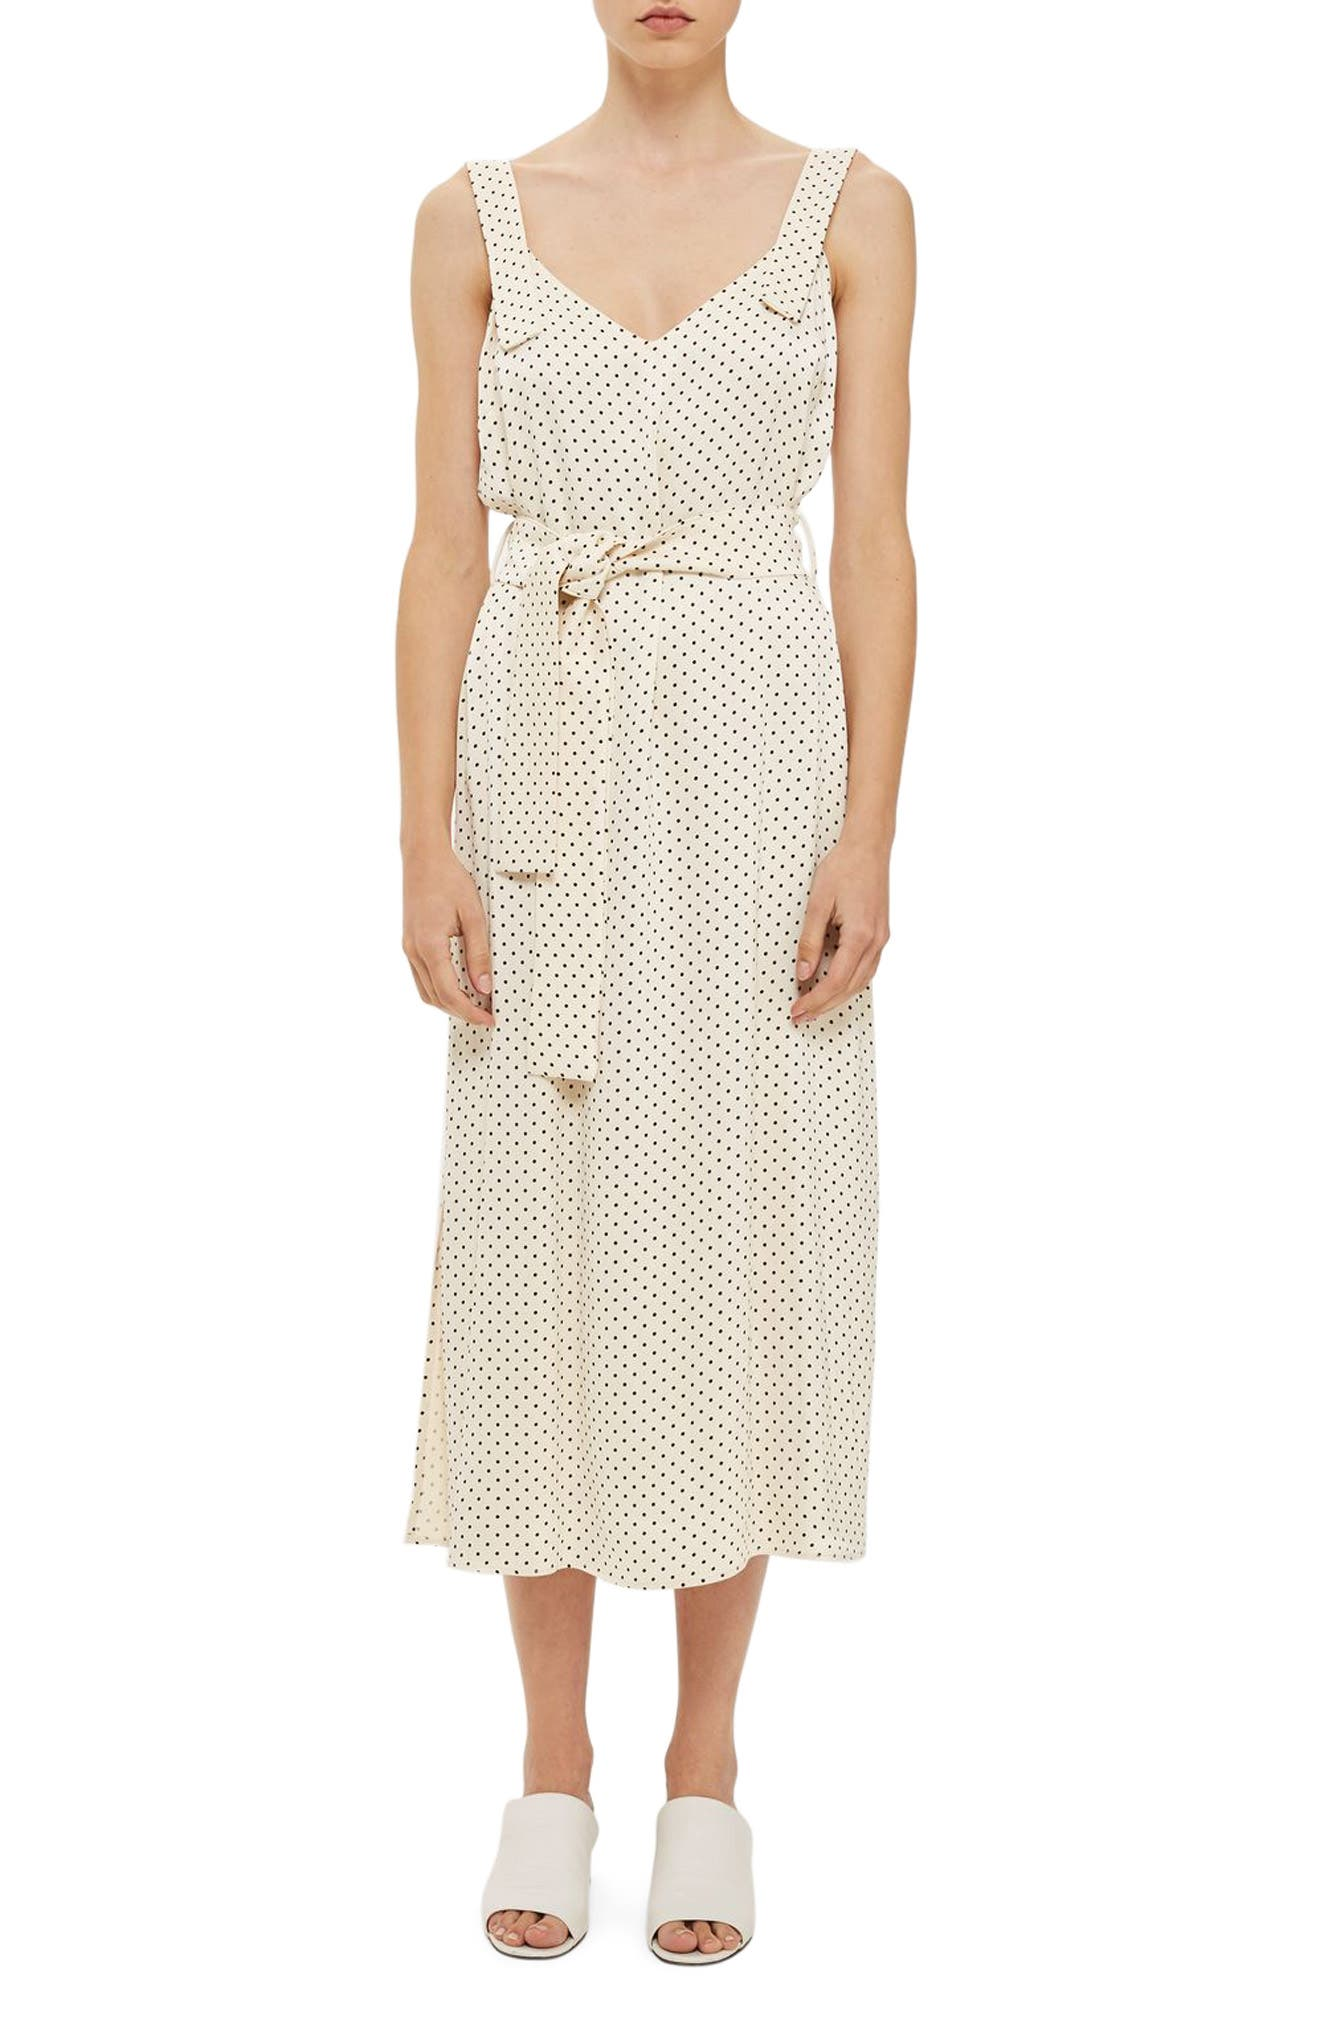 Topshop Boutique Polka Dot Maxi Slipdress